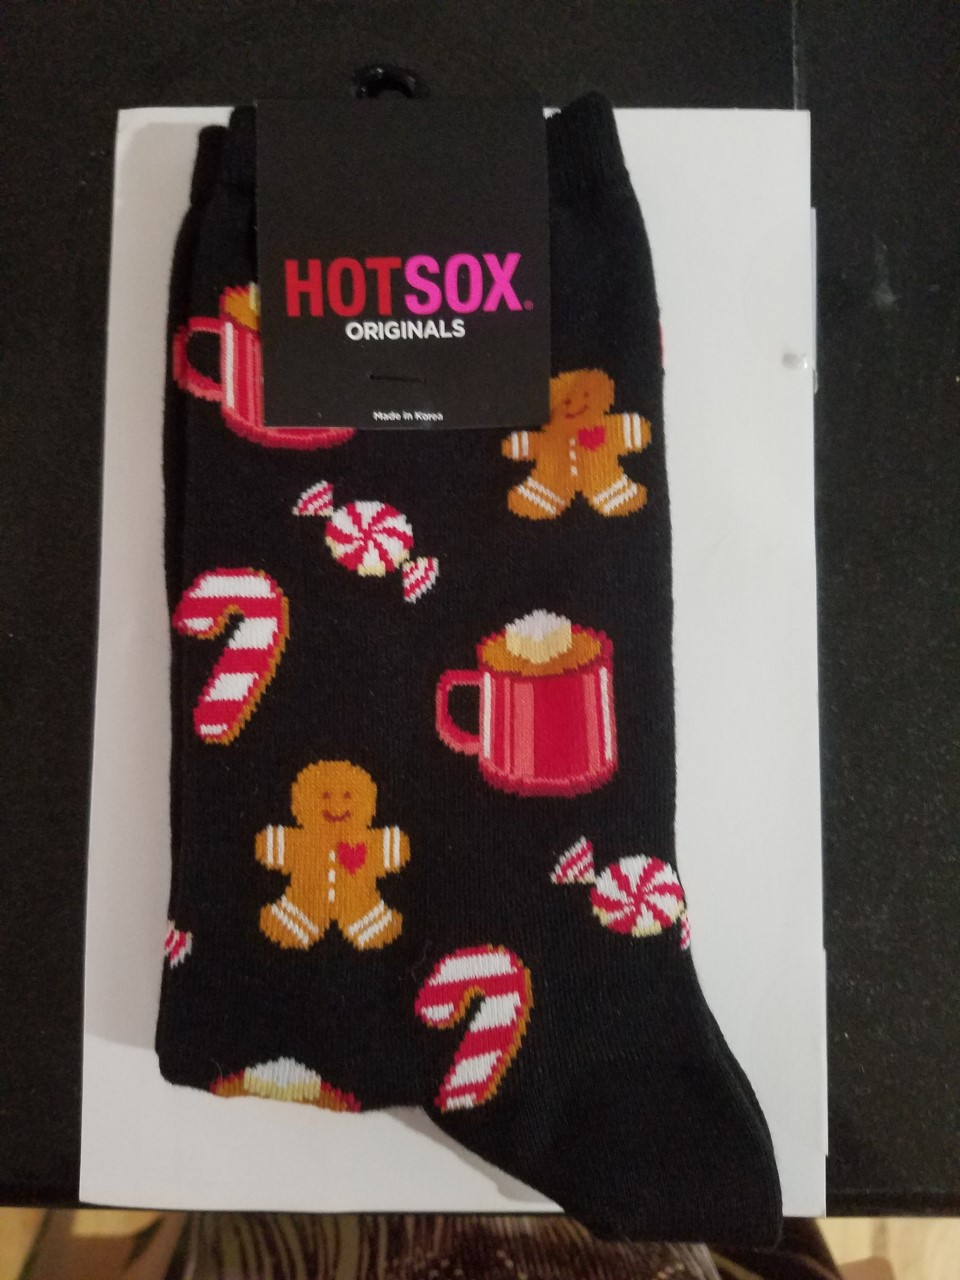 af795c49b47093 Hot Sox Black Hot Cocoa Peppermints and Gingerbread Men Socks Size 9-11  Ladies Socks HO002542  6.00 pair